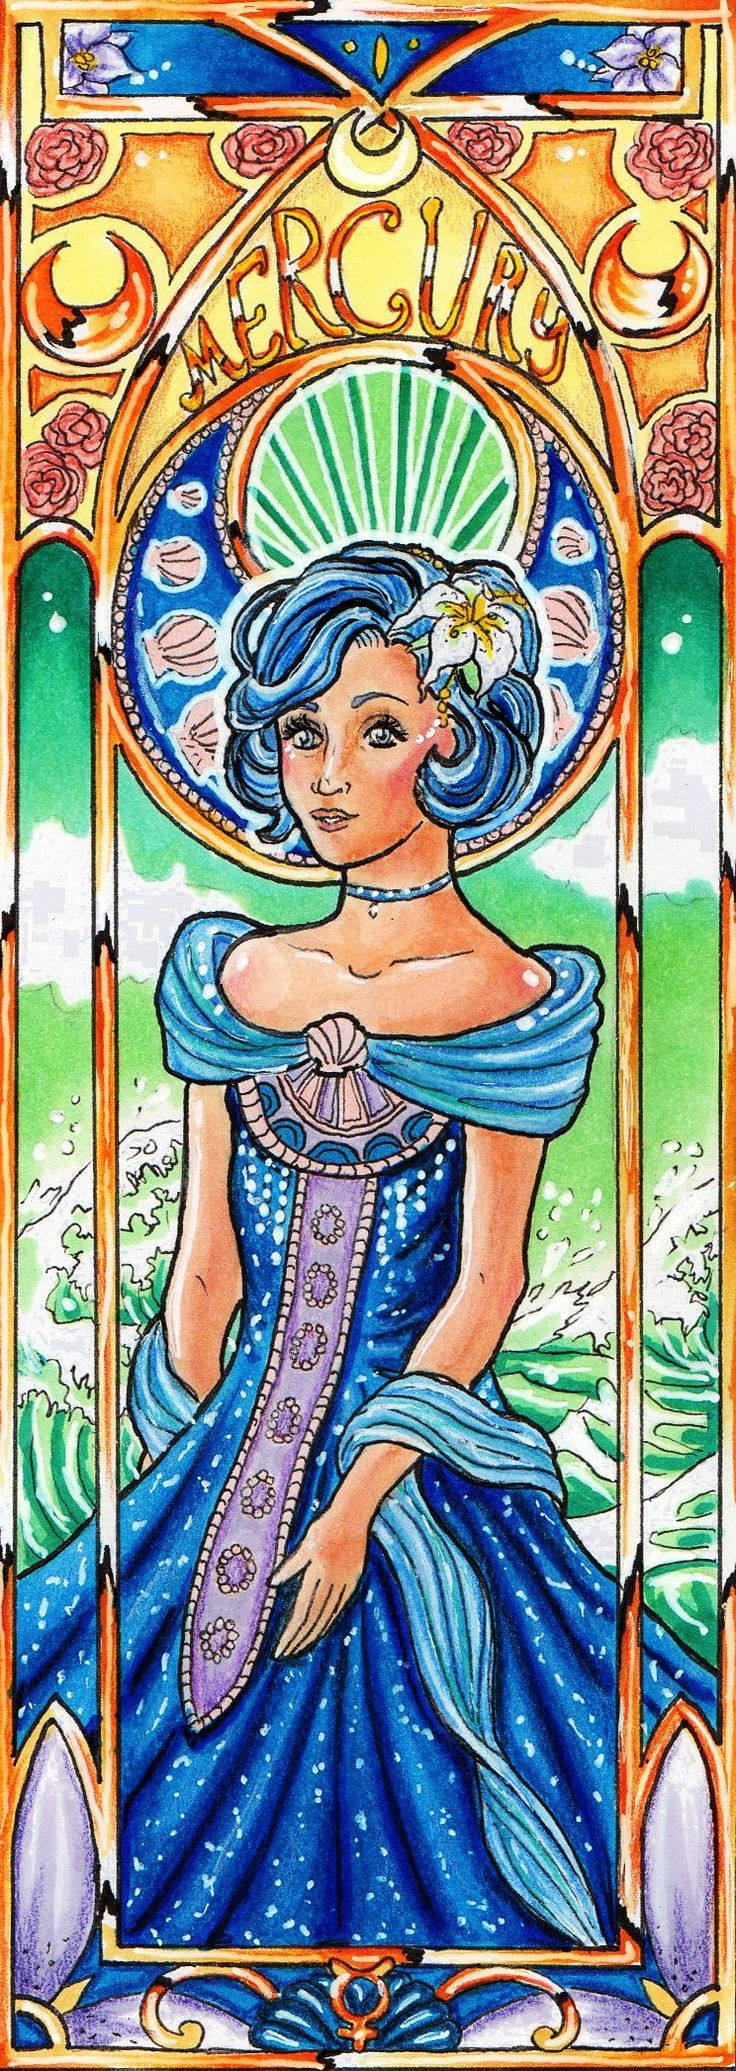 sailor moon art nouveau sailor mercury mucha style by